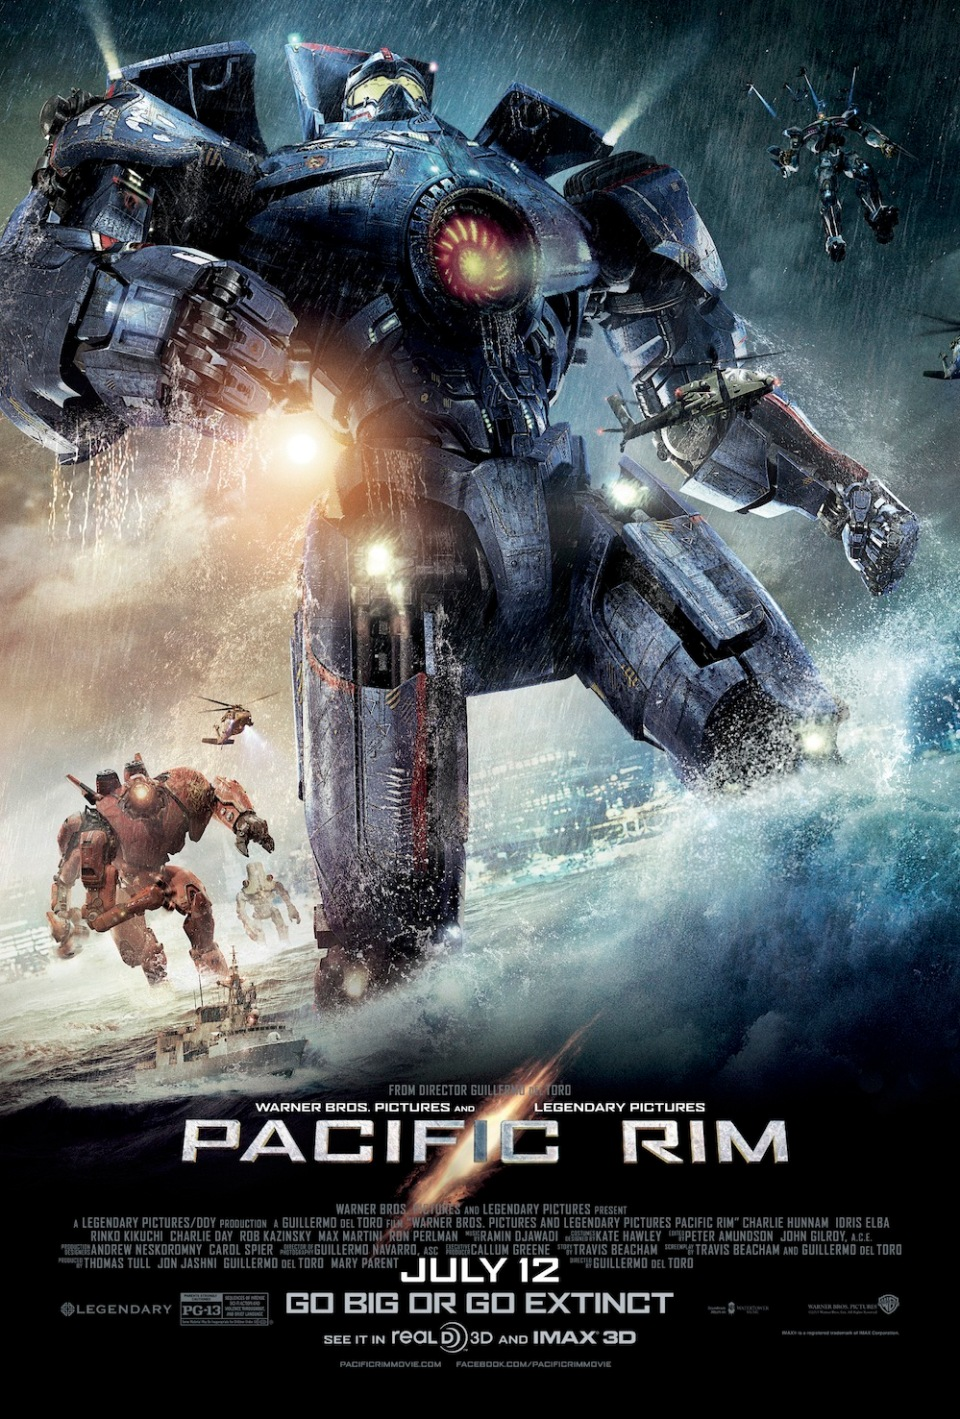 246008id1f_PacRim_Main_Final_Rated_27x40_1Sheet.indd